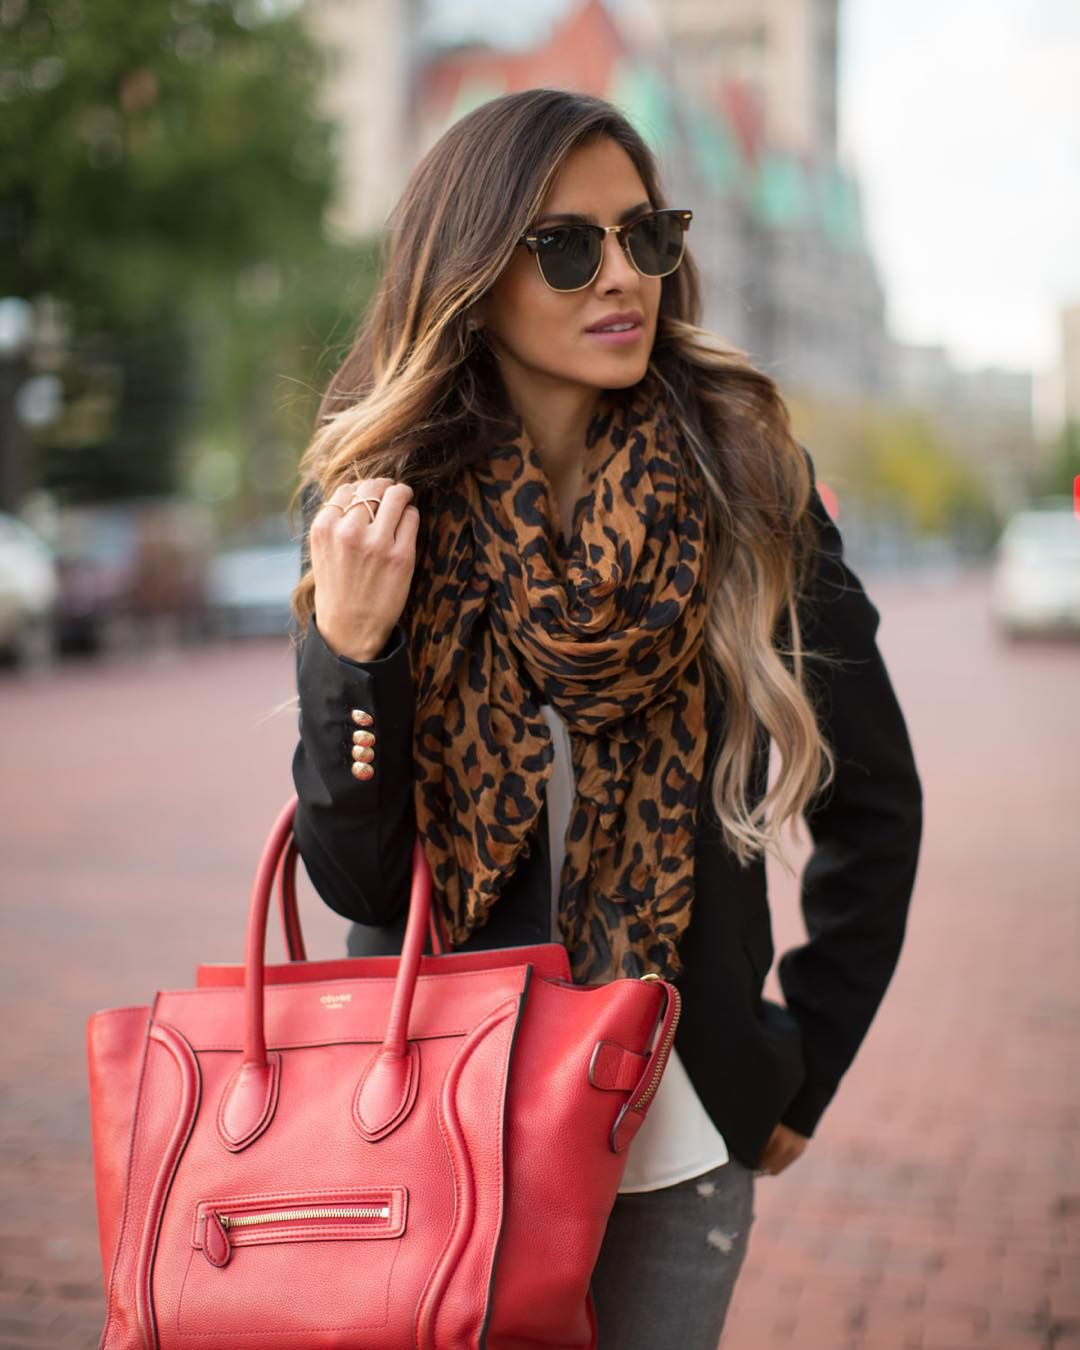 """I've been stocking up on fall scarves lately, but this leopard one from Zara will always be a favorite. #fallfashion #ootd #zara"""